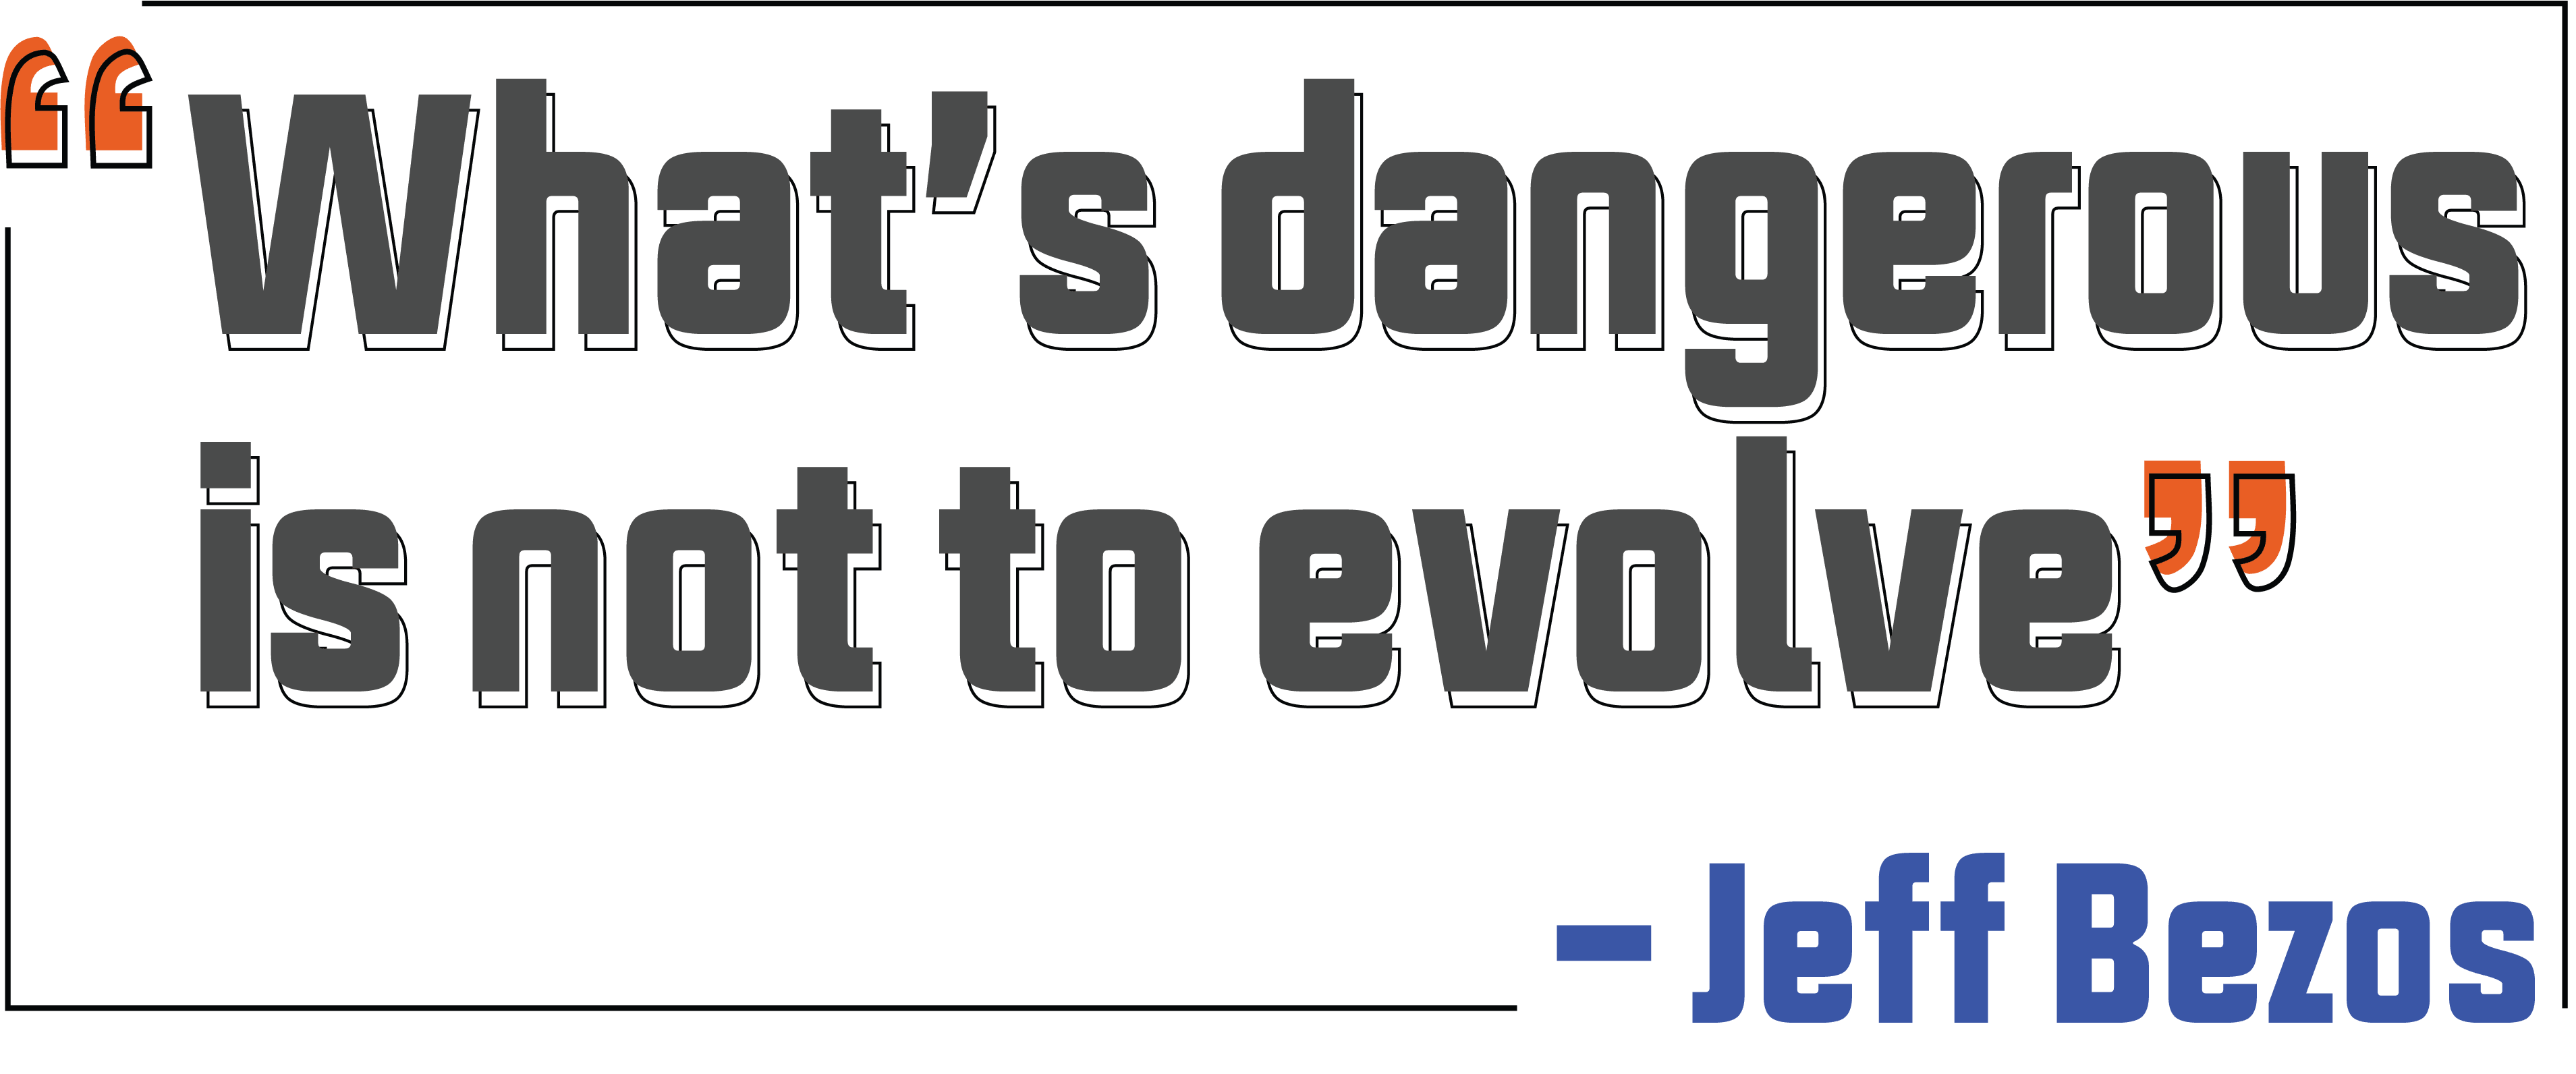 What is dangerous is not to evolve